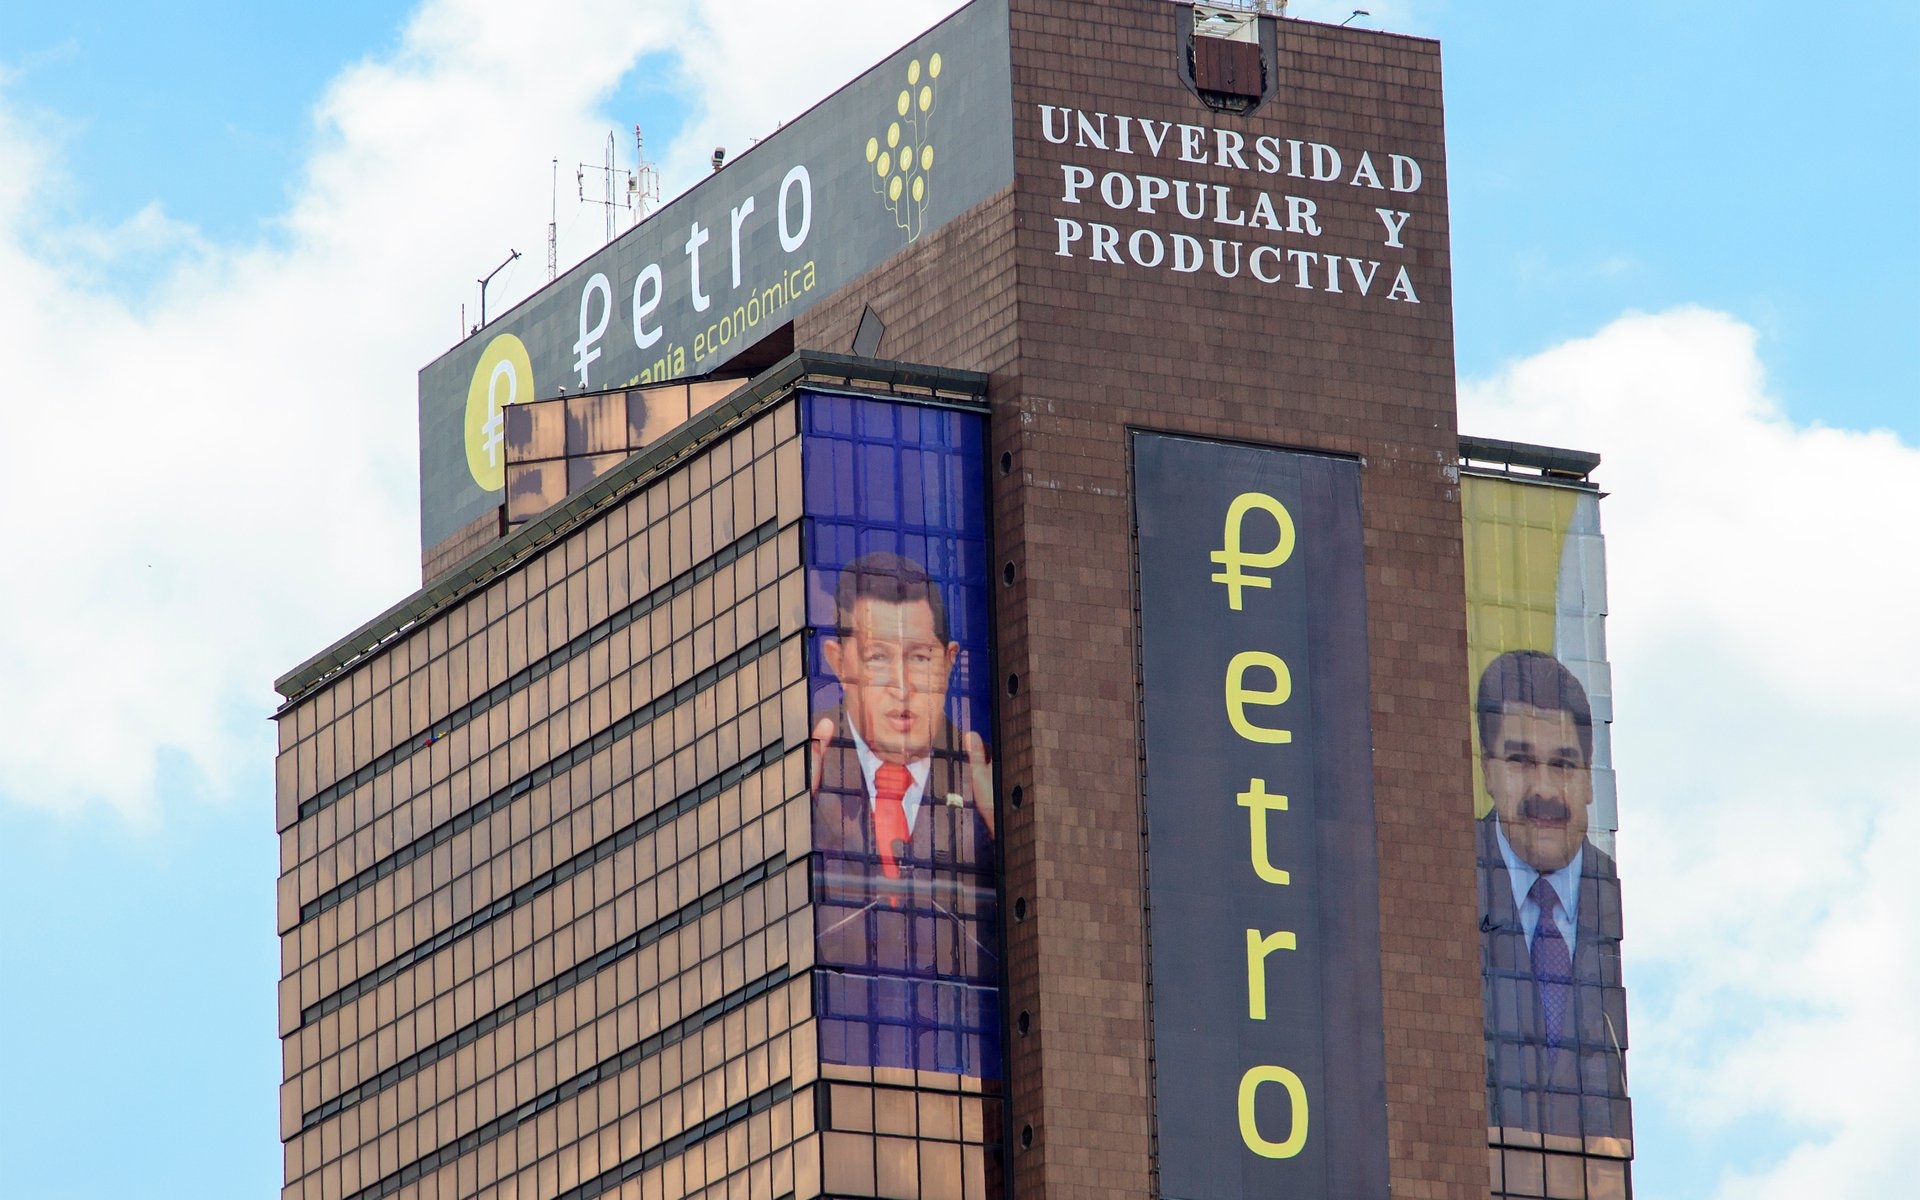 Venezuelan jittery ahead of sudden economic reforms